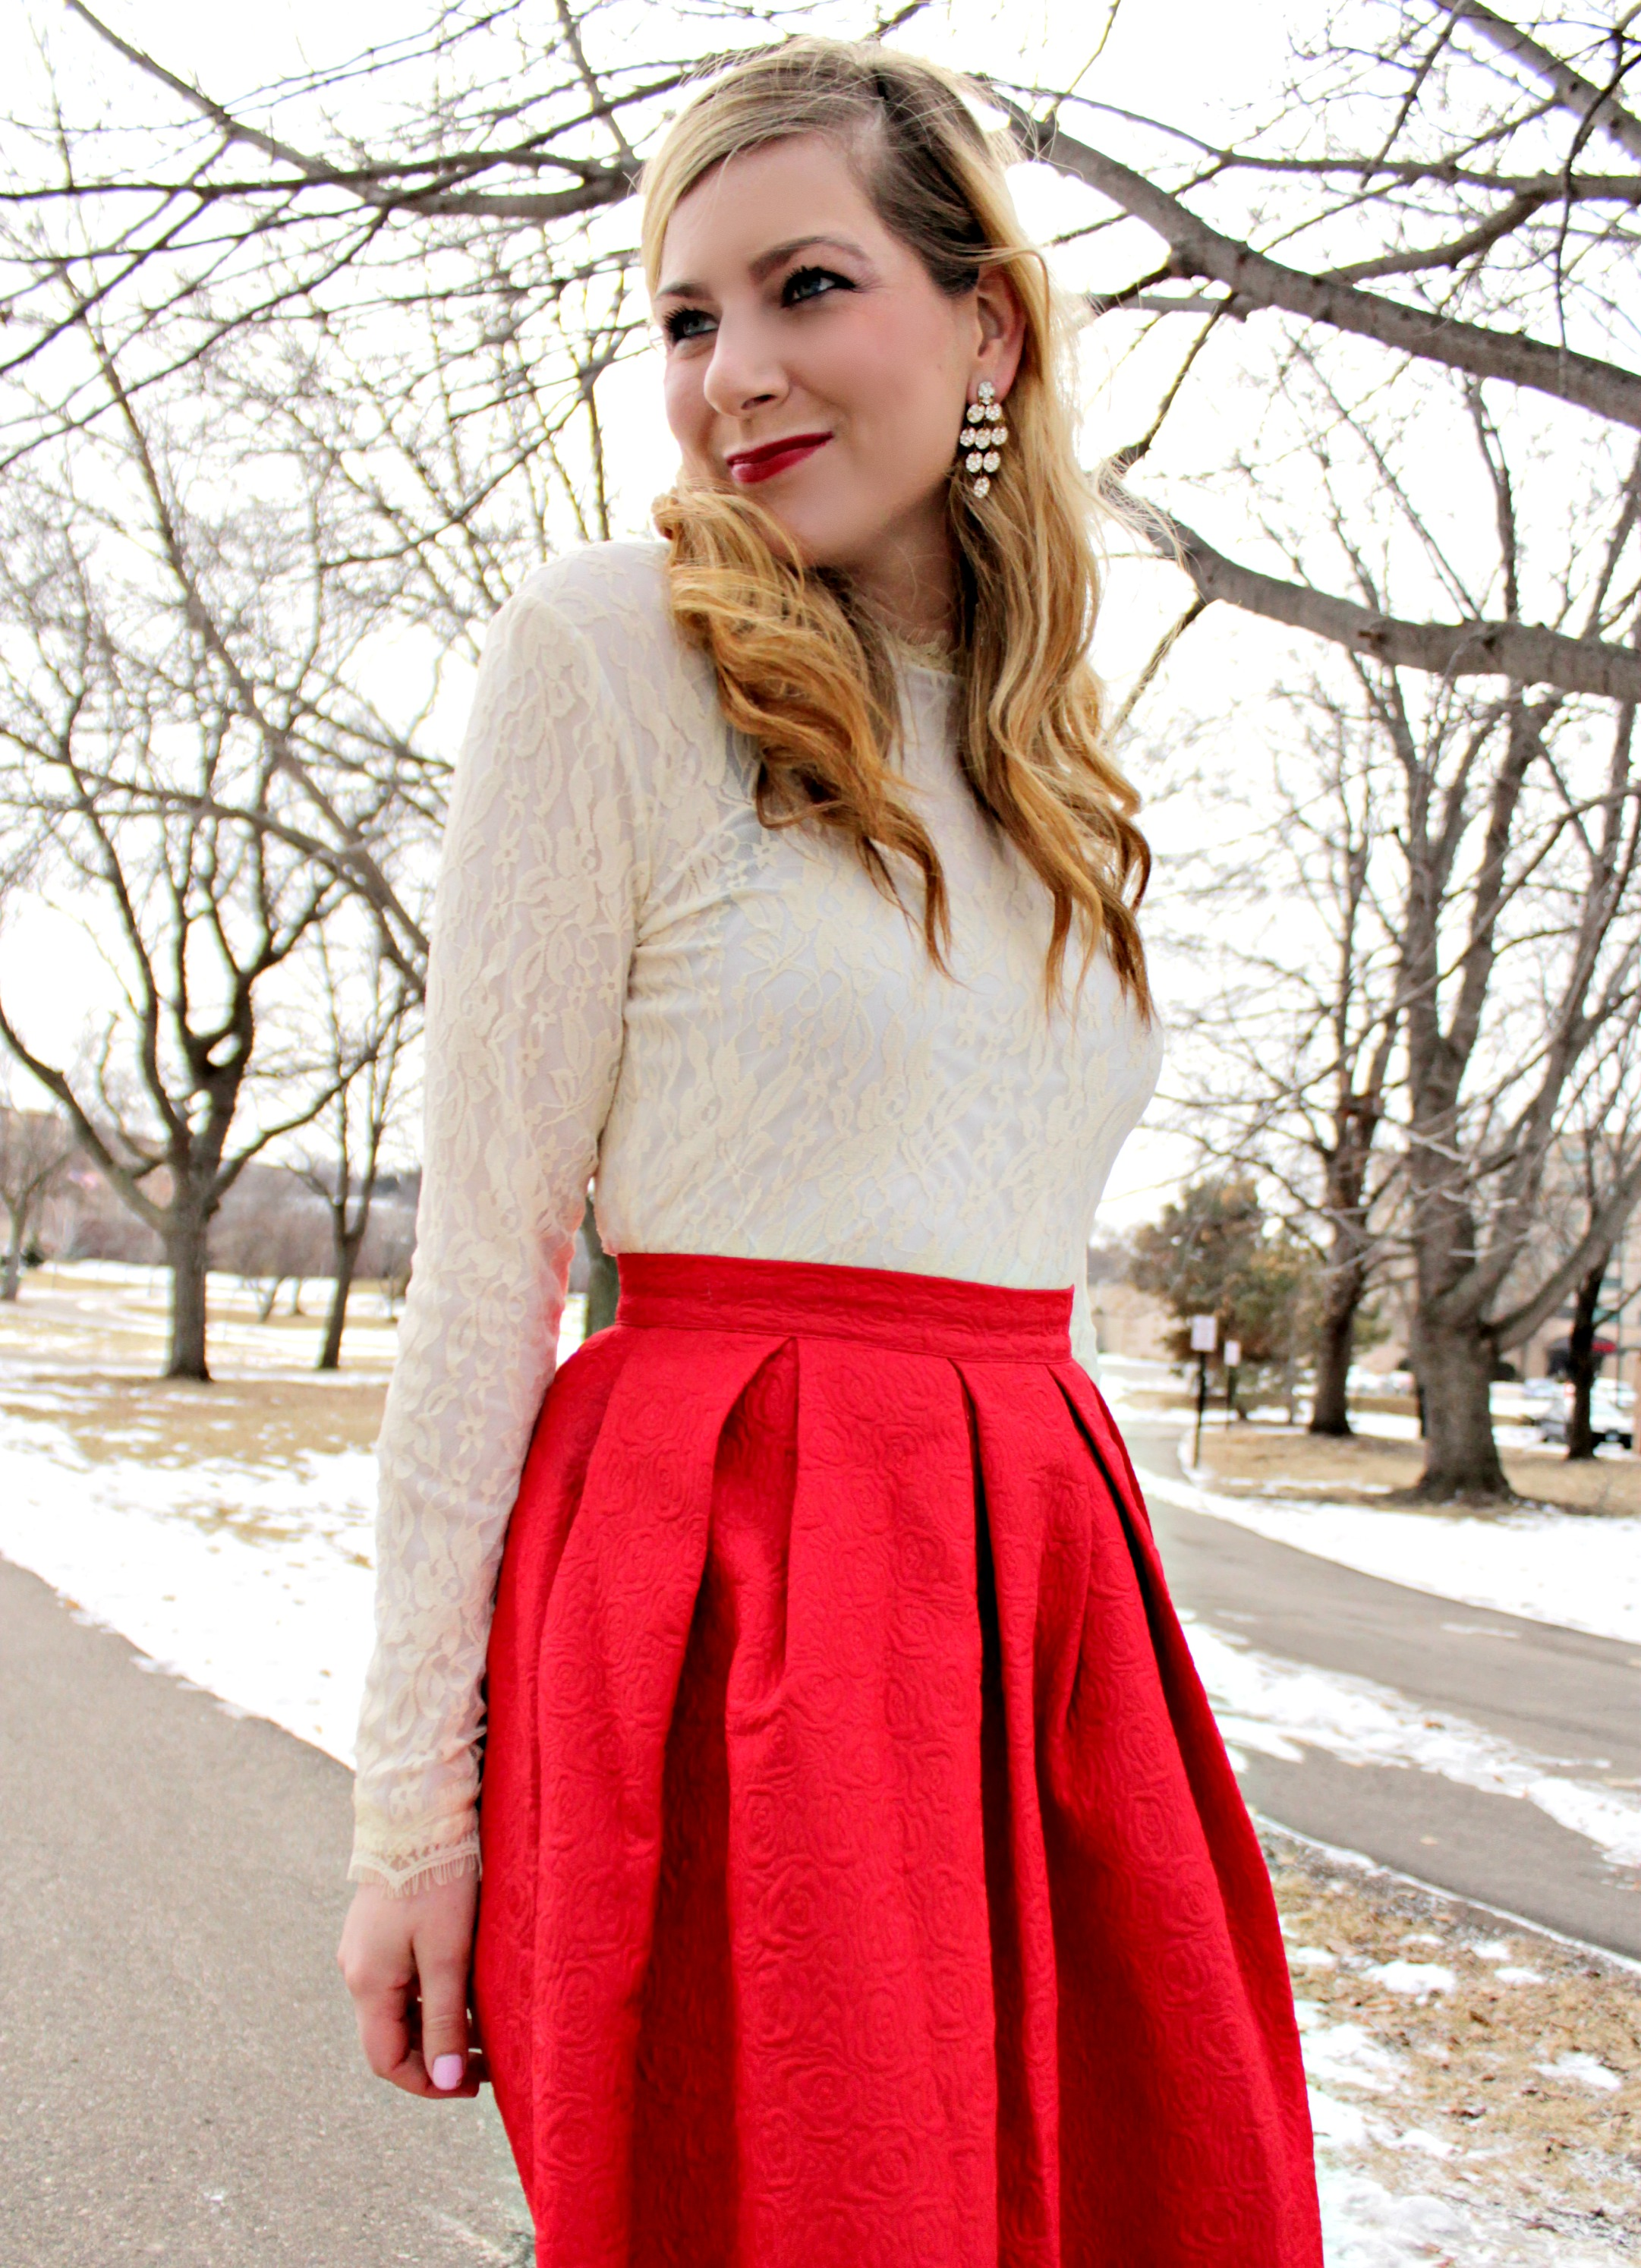 Rachel S Lookbook Ivory Lace Top And Red Skirt